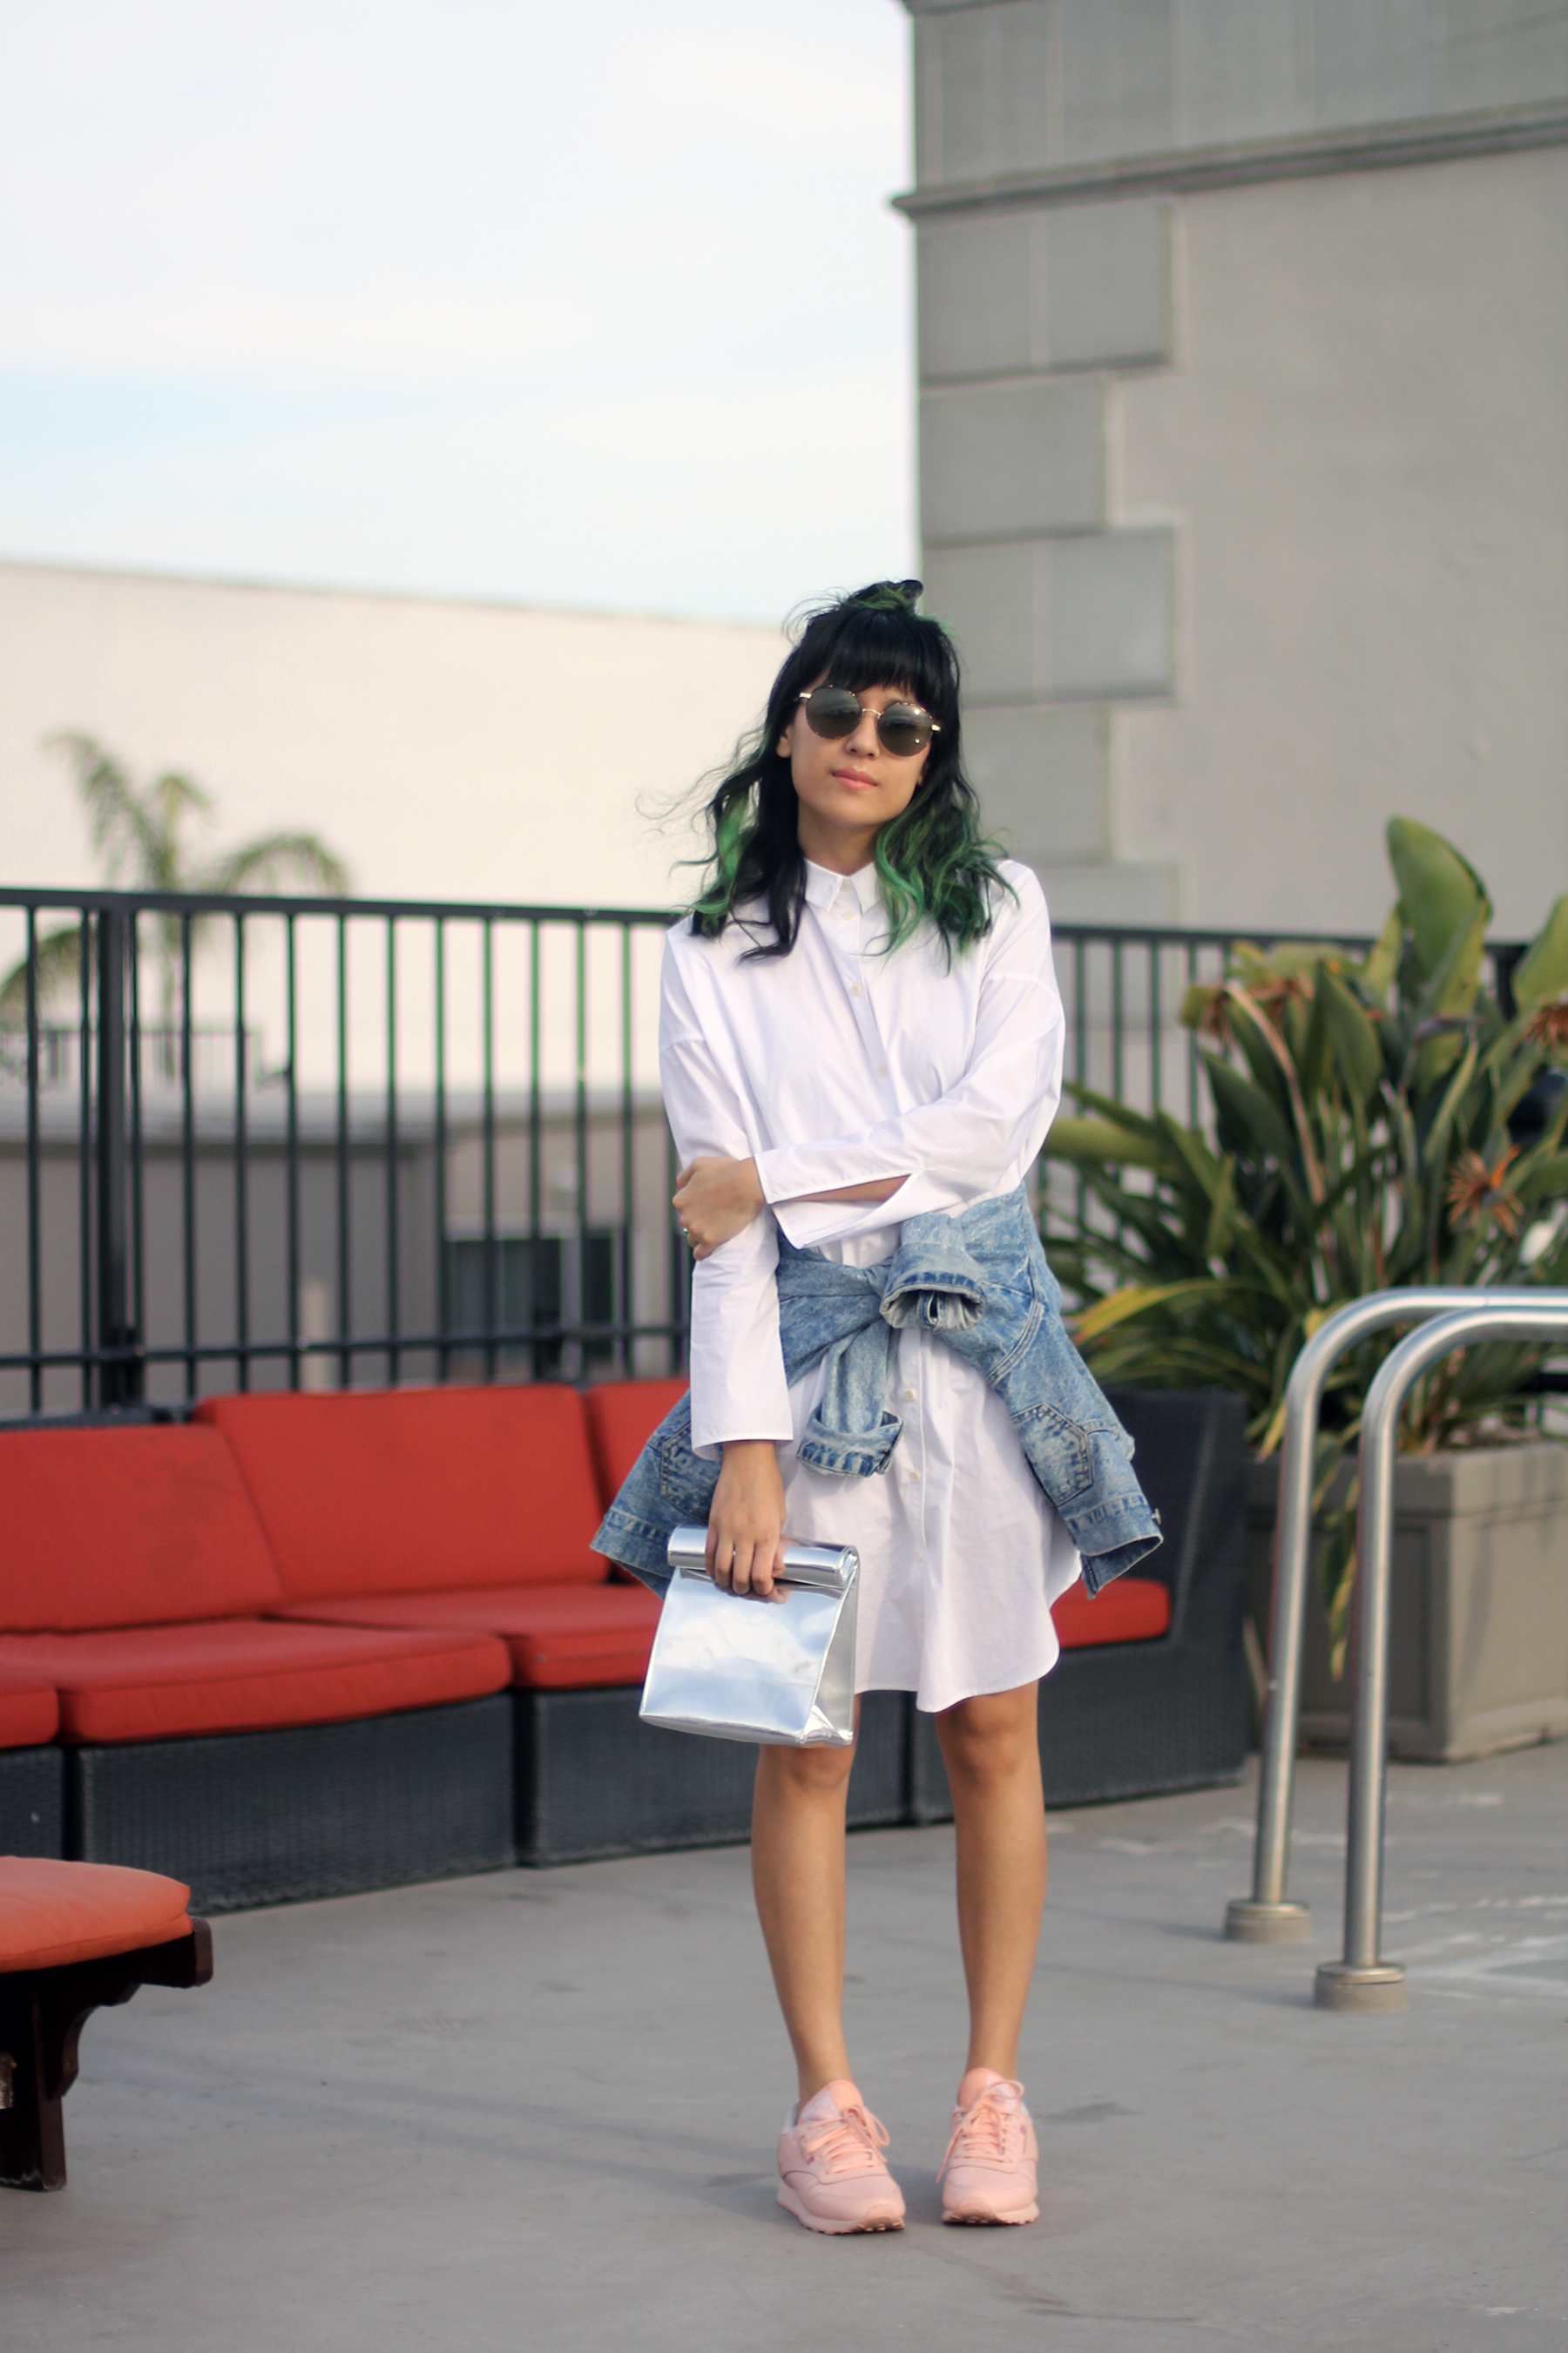 Acne Studios Poplin Shirt Dress, Pink Reebok tennis shoes, green hair, New Classics Studios SMK metallic foldover clutch, The Row sunglasses